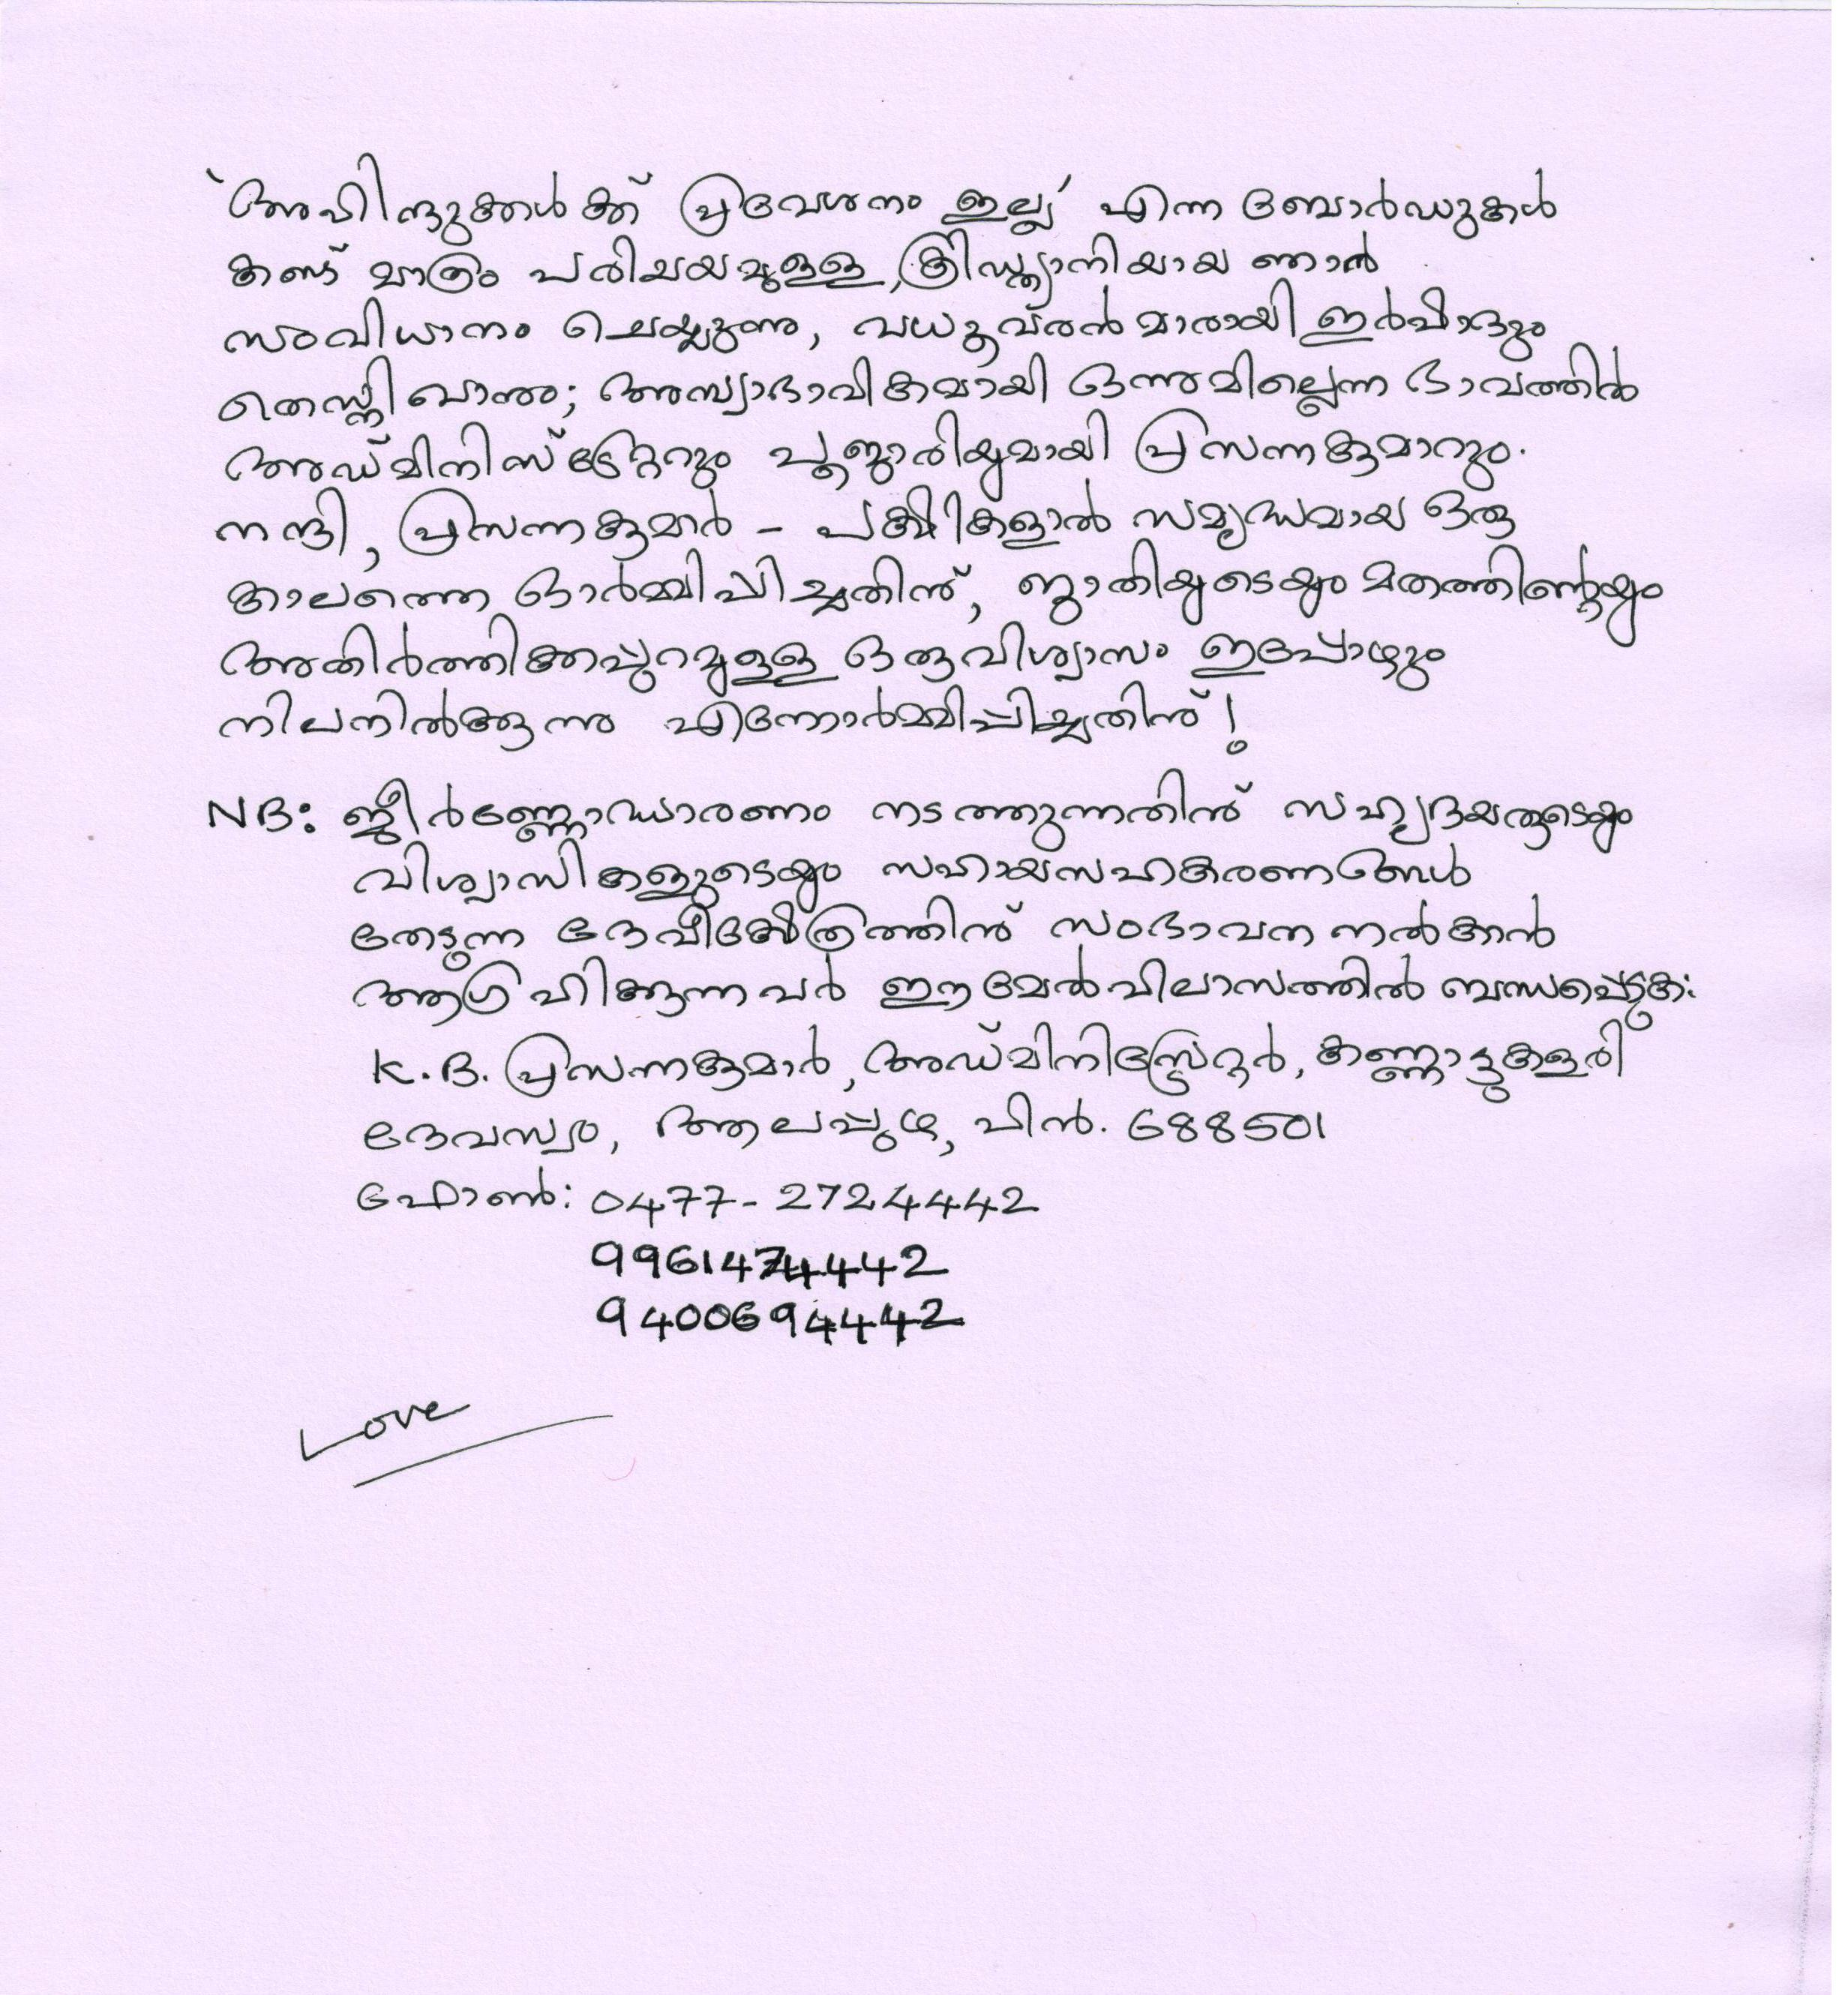 malayalam love letter in english - photo #21